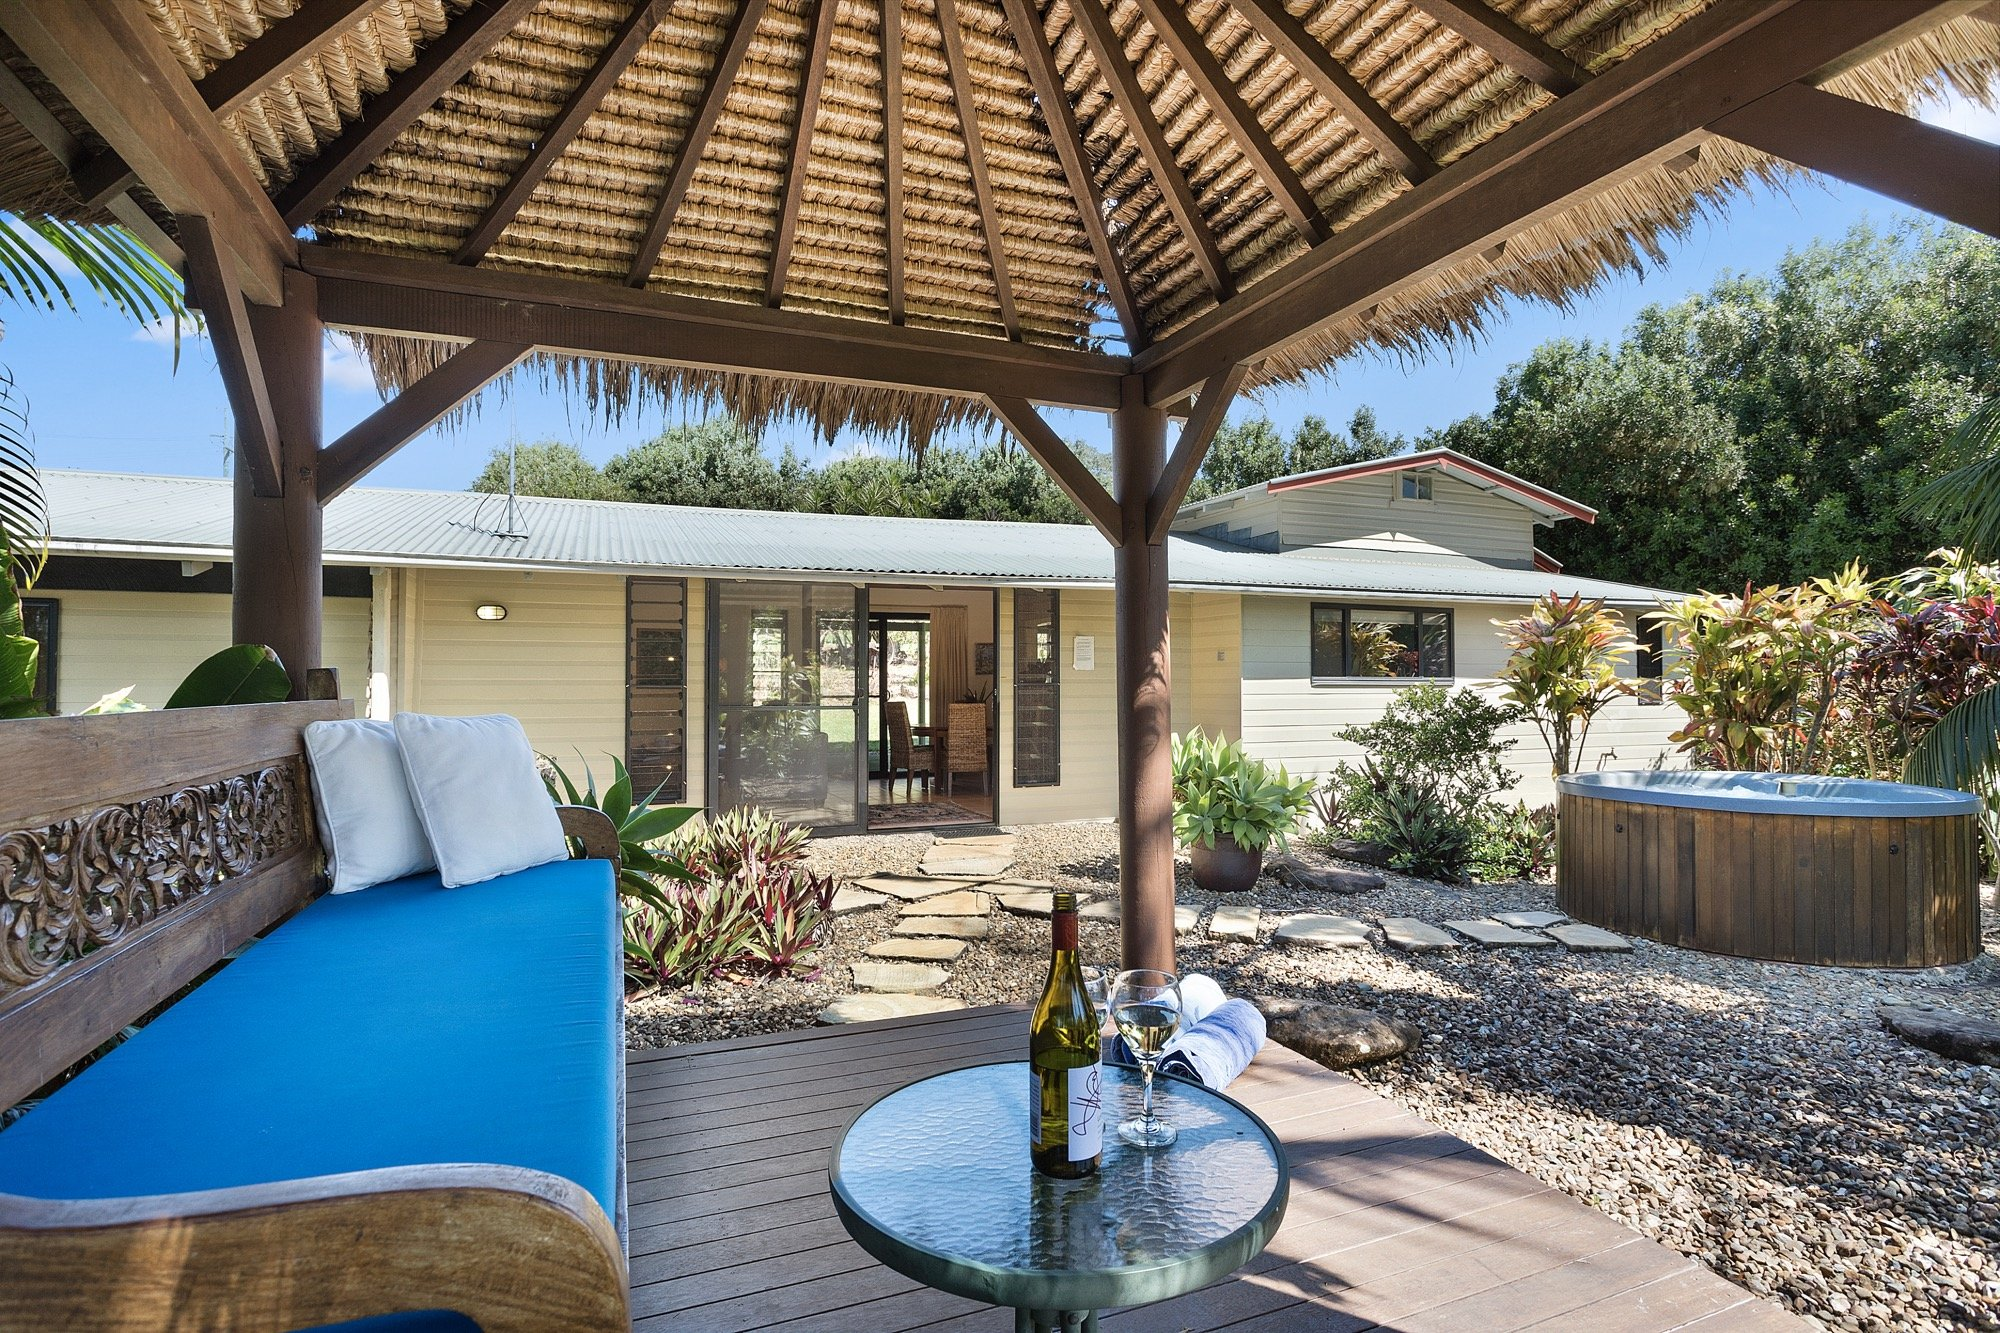 suzanne s hideaway s5 accommodation clunes new south wales rh accommodationguru com